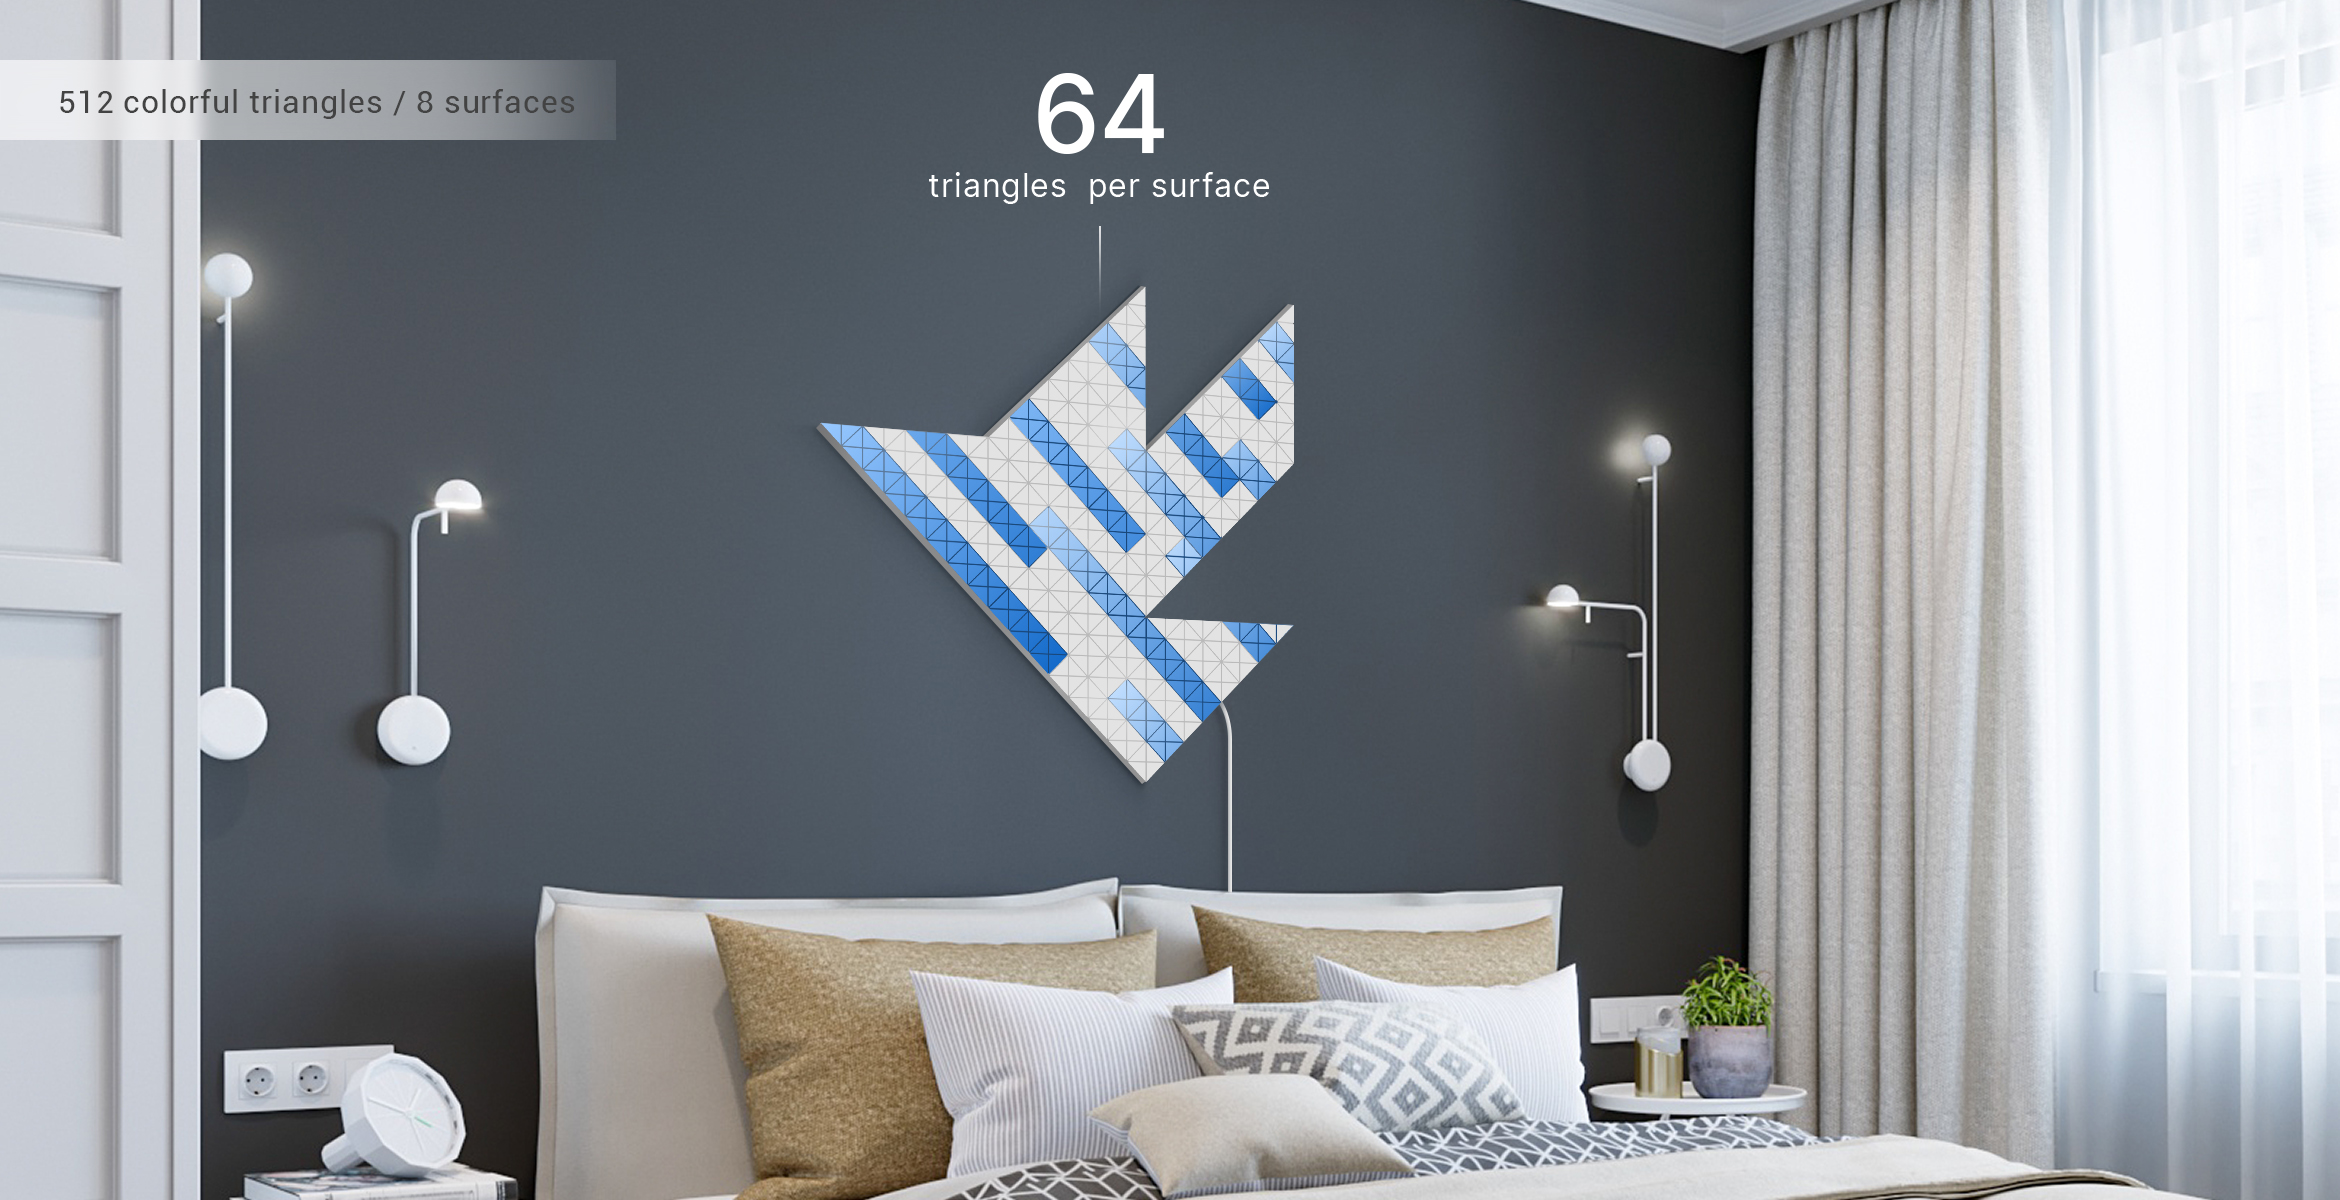 Bird shape in blue colour assembled from 8 LaMetric SKY smart light surfaces with a rain light effect, complements the room interior